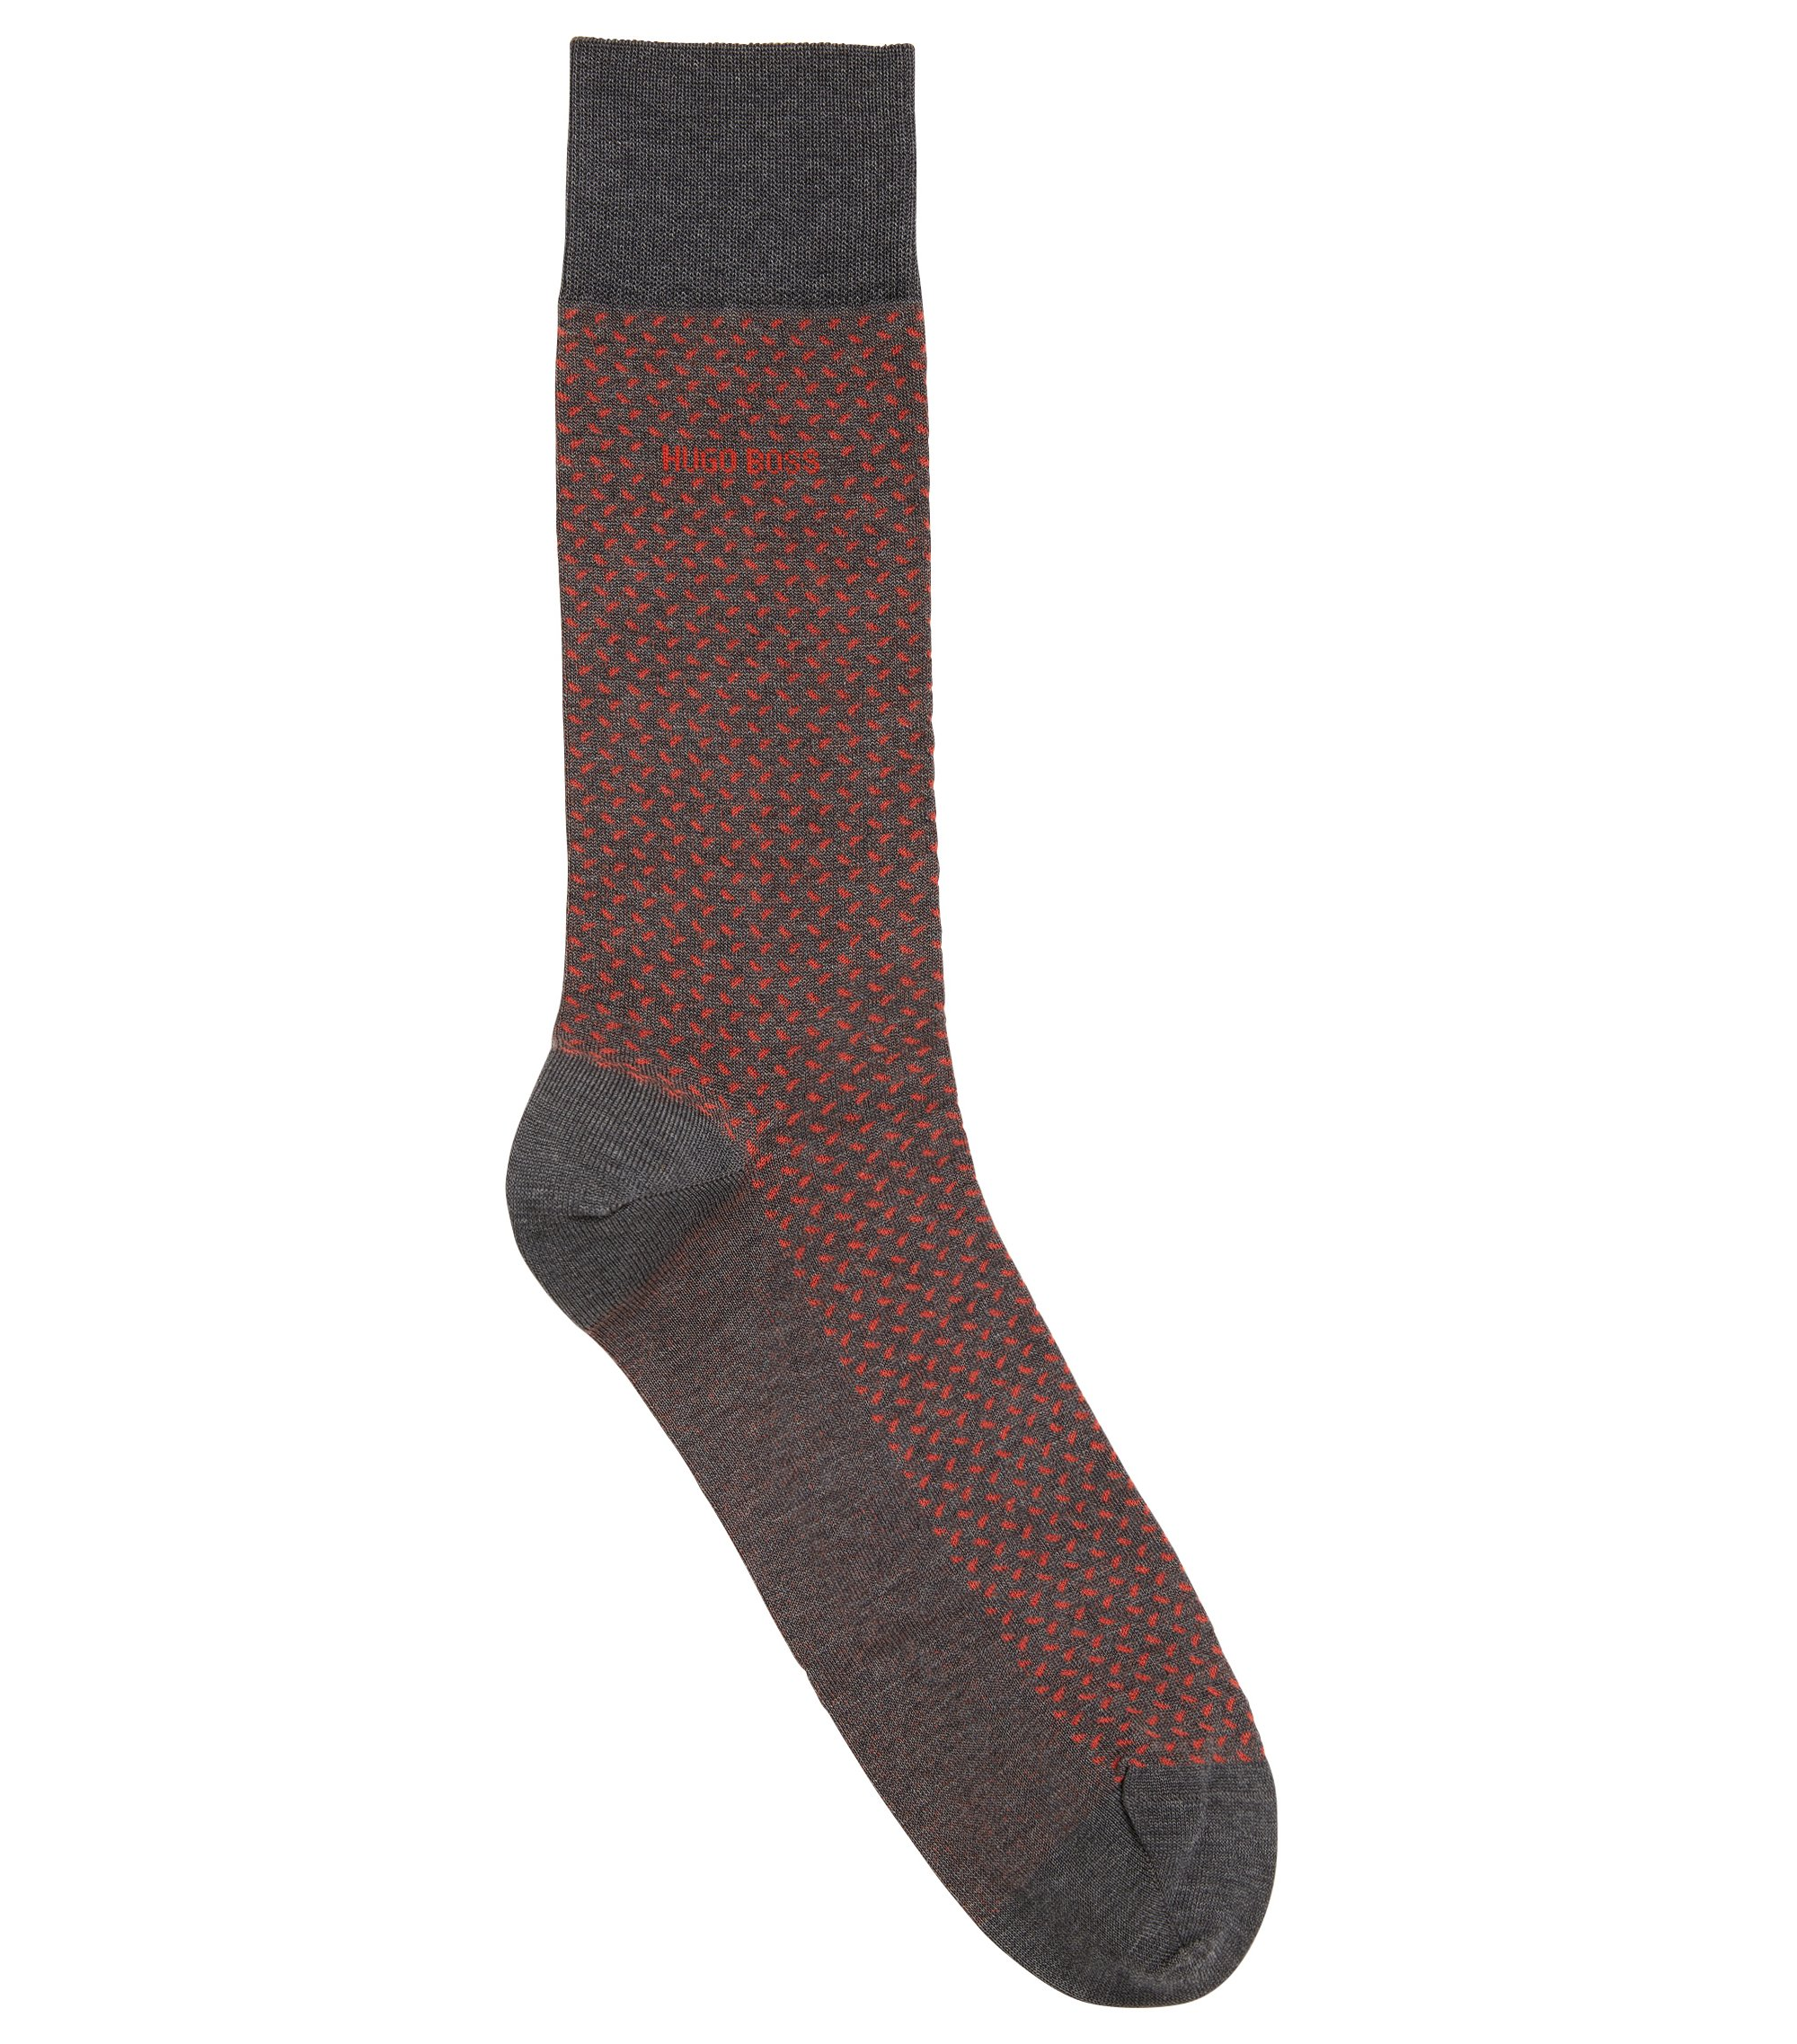 Patterned Cotton Blend Sock | RS MiniPattern US MC, Grey